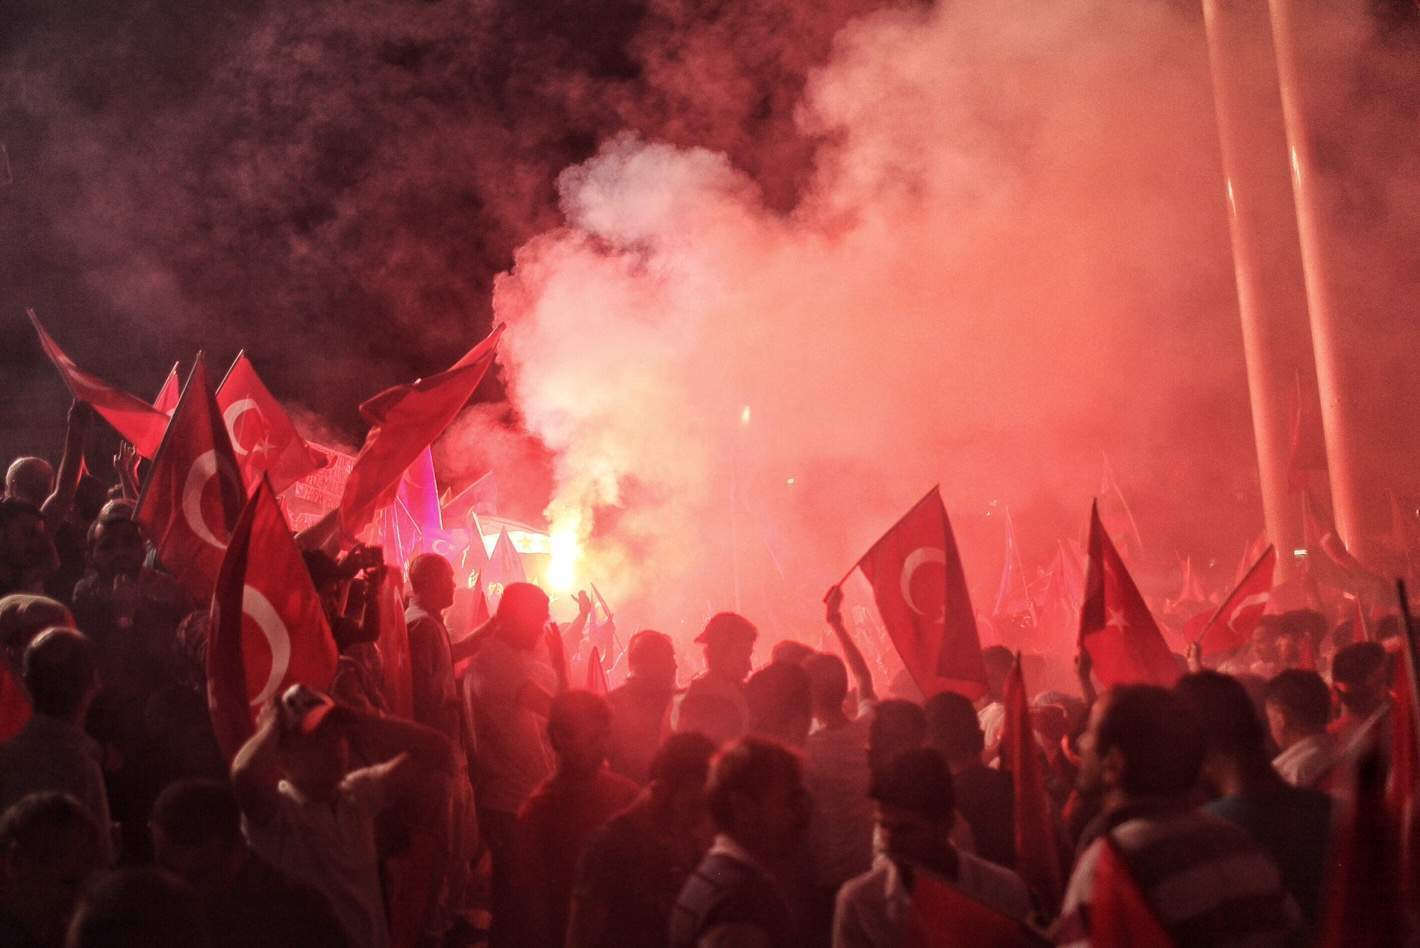 Turkey's failed coup: President Erdoğan unleashes his political foot soldiers